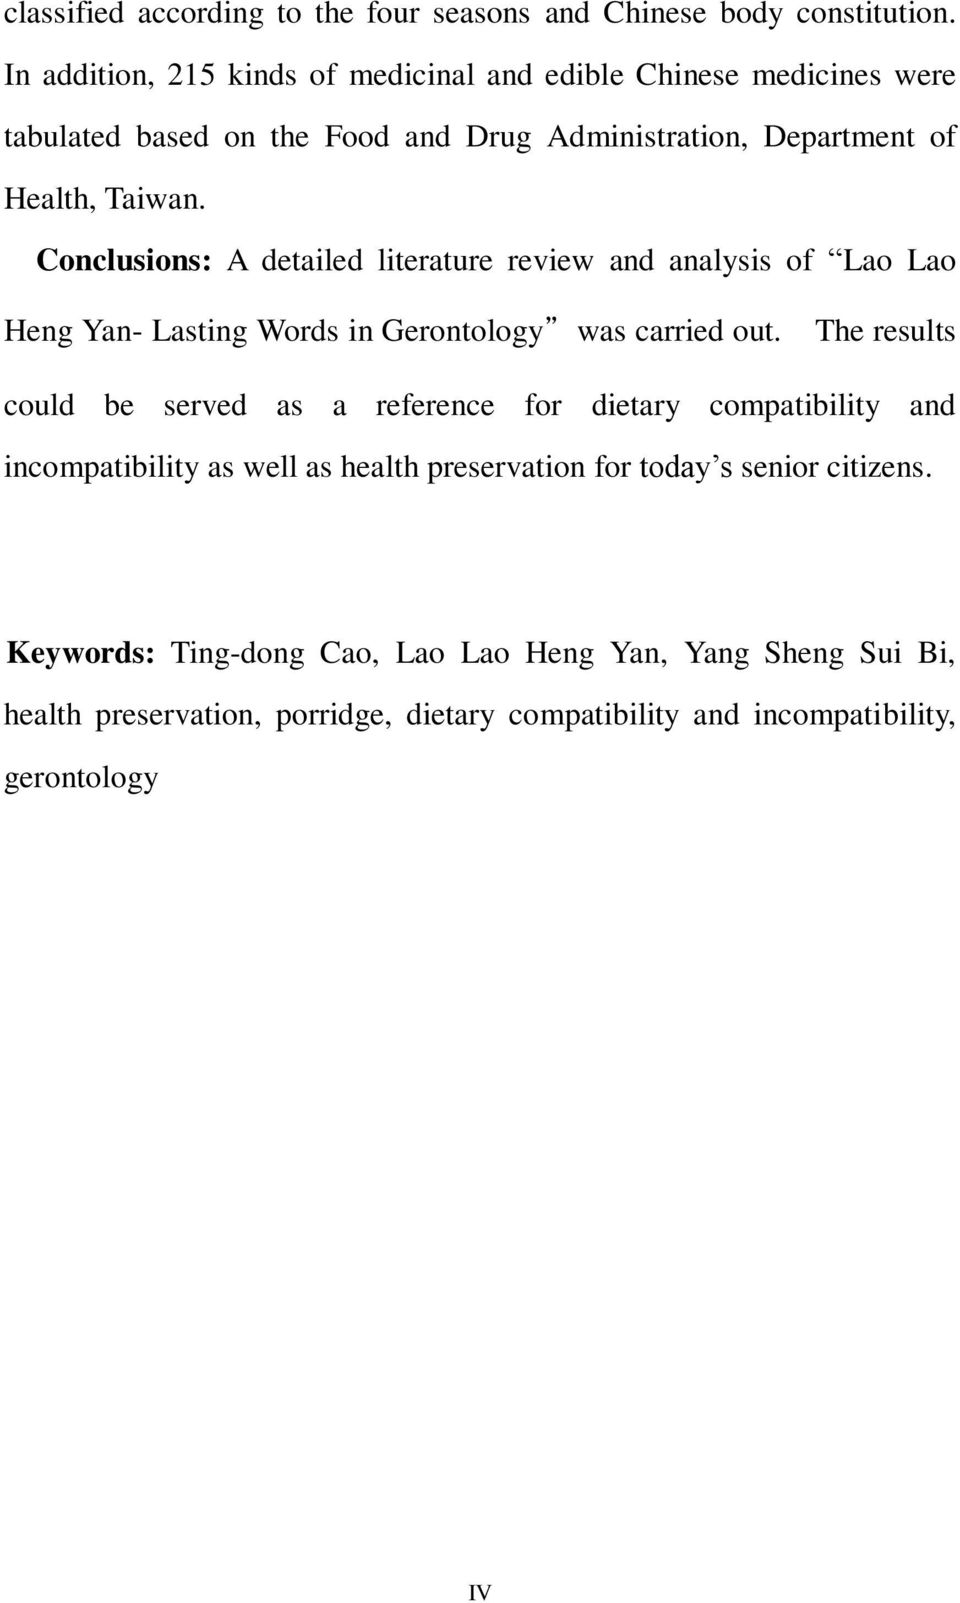 Conclusions: A detailed literature review and analysis of Lao Lao Heng Yan- Lasting Words in Gerontology was carried out.